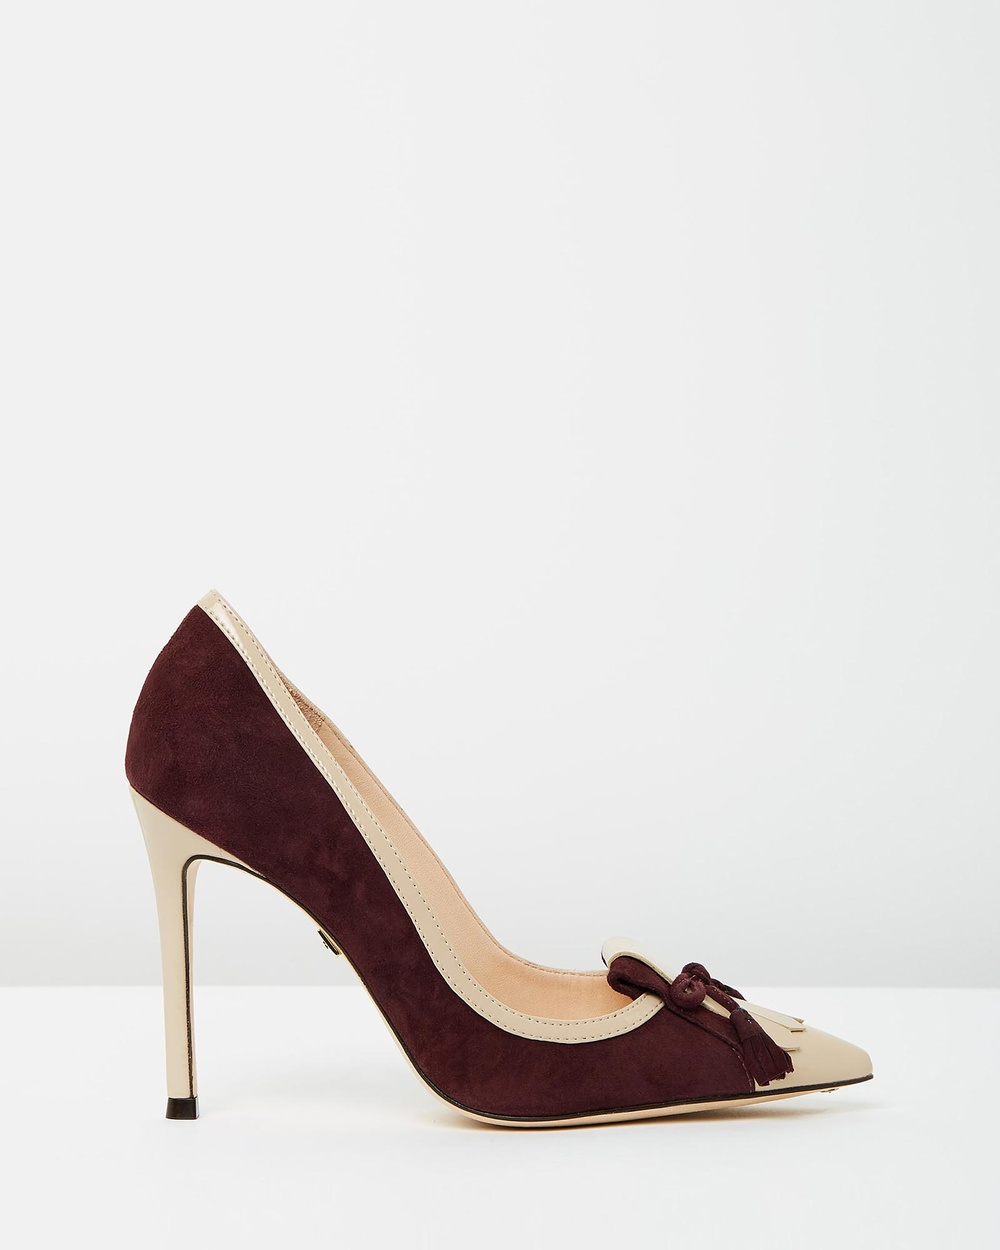 Nina Armando Madison All Pumps Merlot Suede & Beige Patent Madison